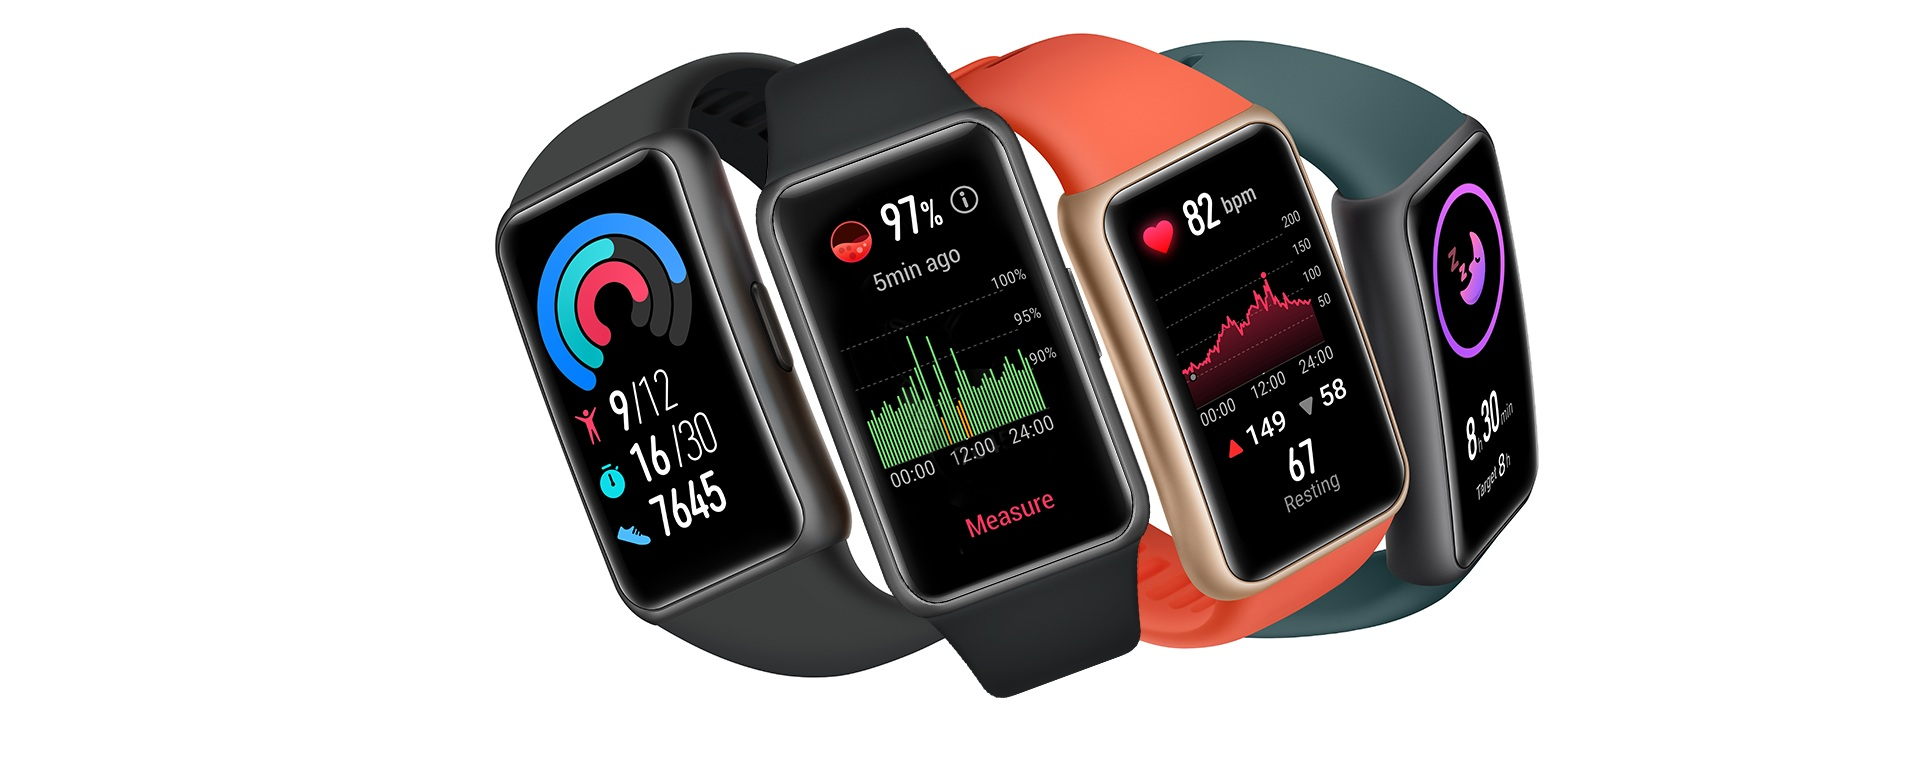 HUAWEI Band 6 All-Day SpO2 Monitoring, FillView Display, 2-Week Battery Life